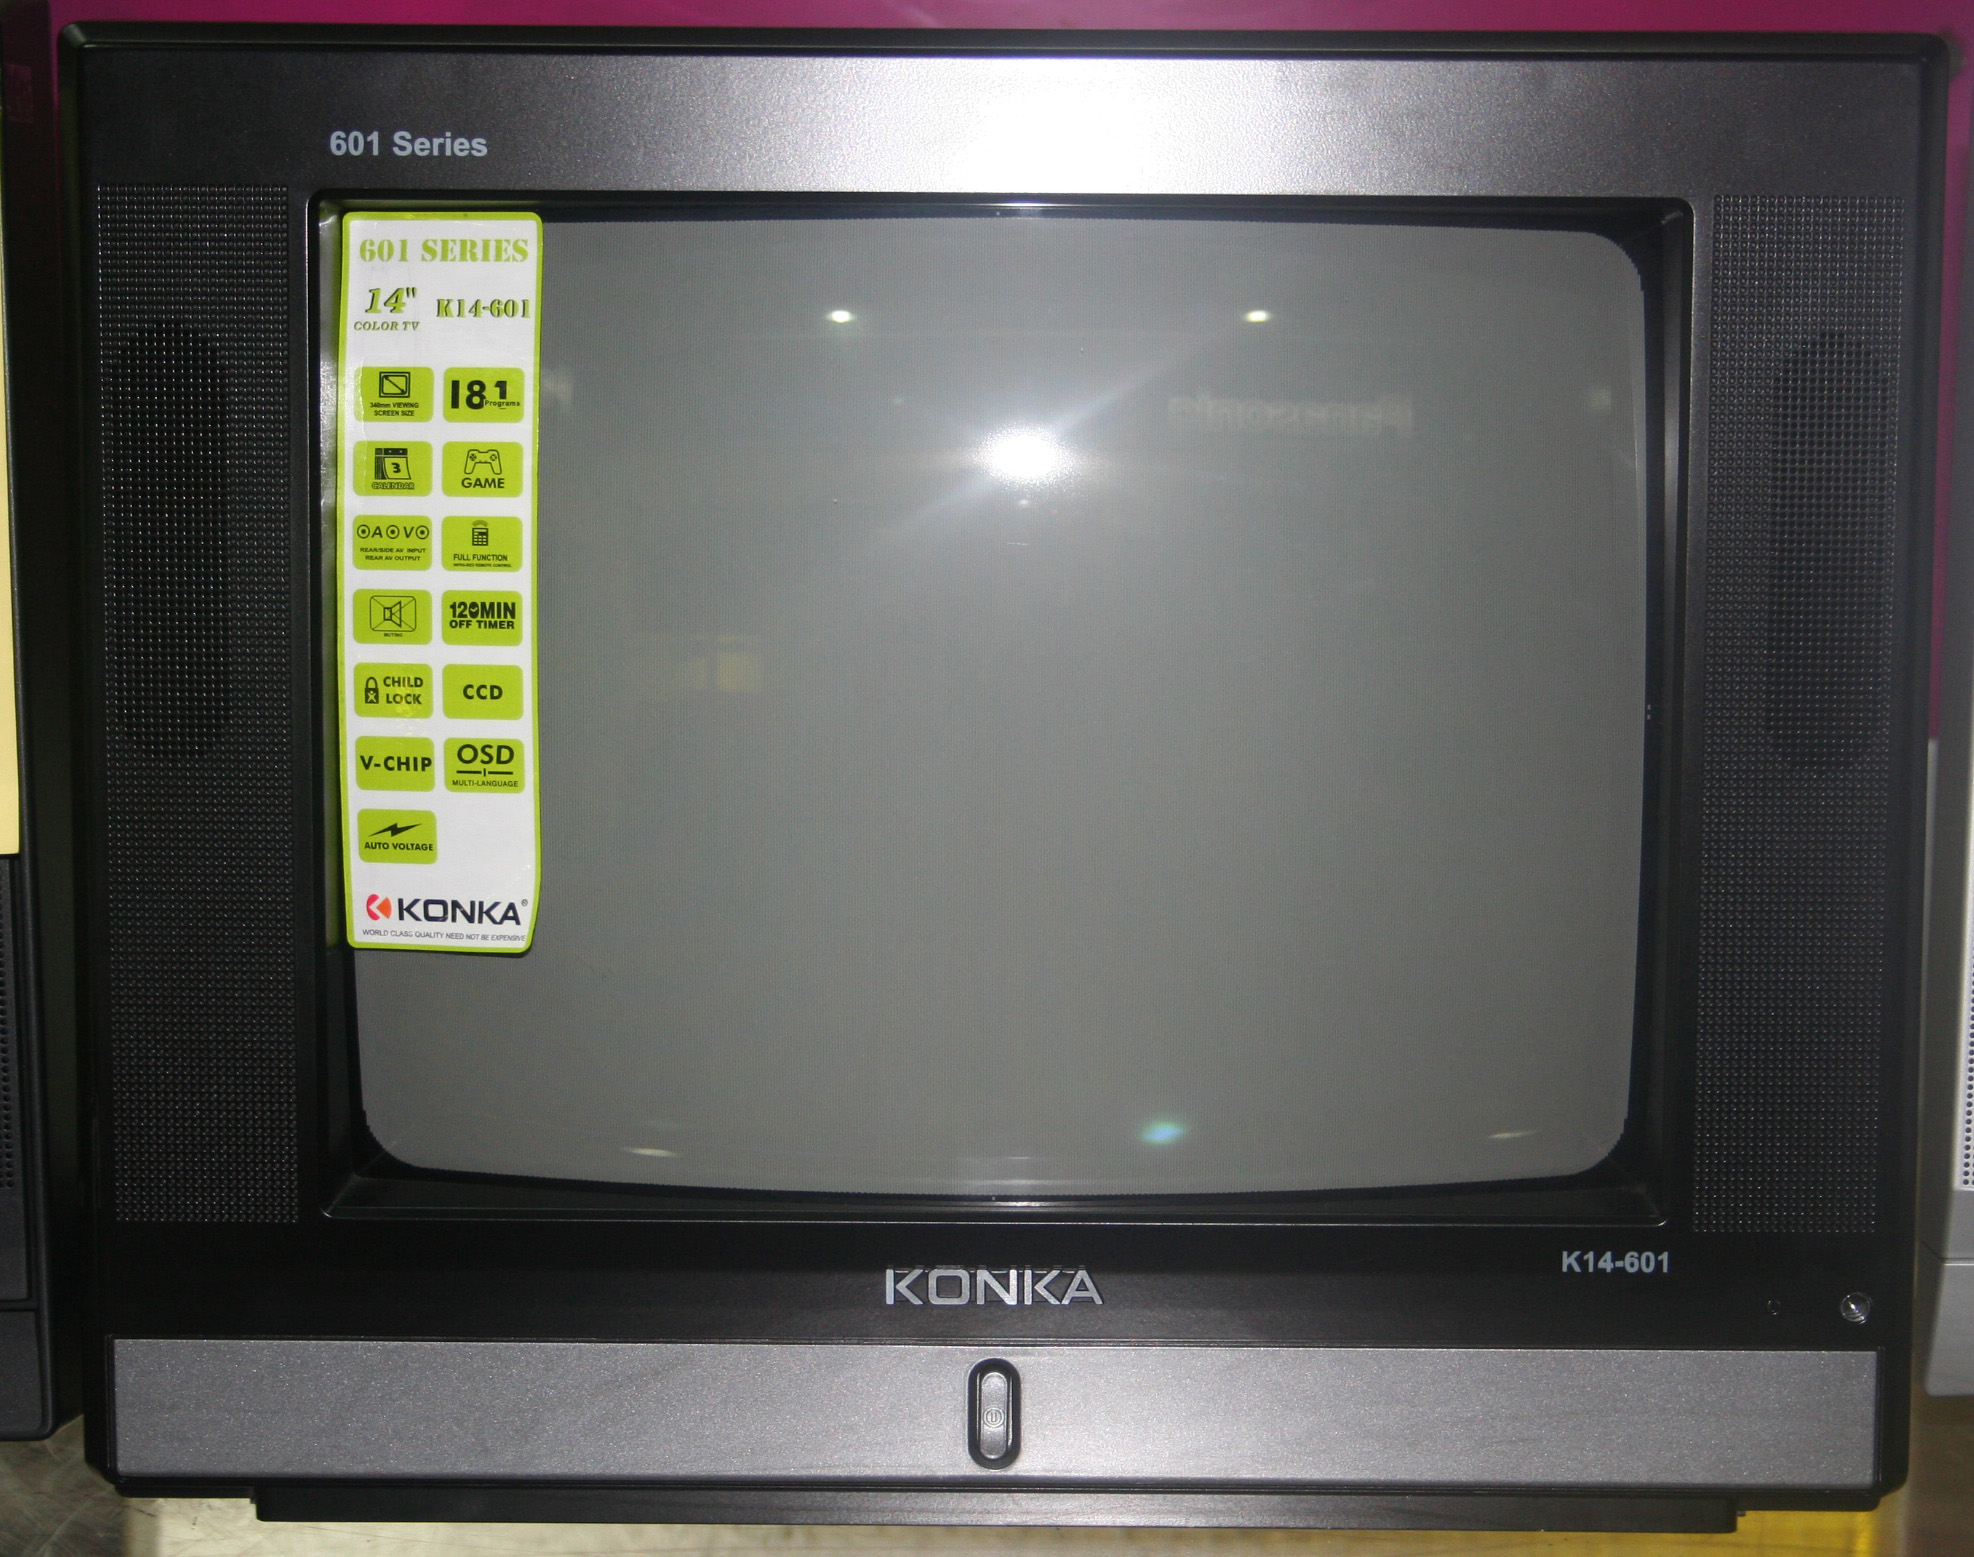 Konka K14-601 - 14 U0026quot  Color Tv